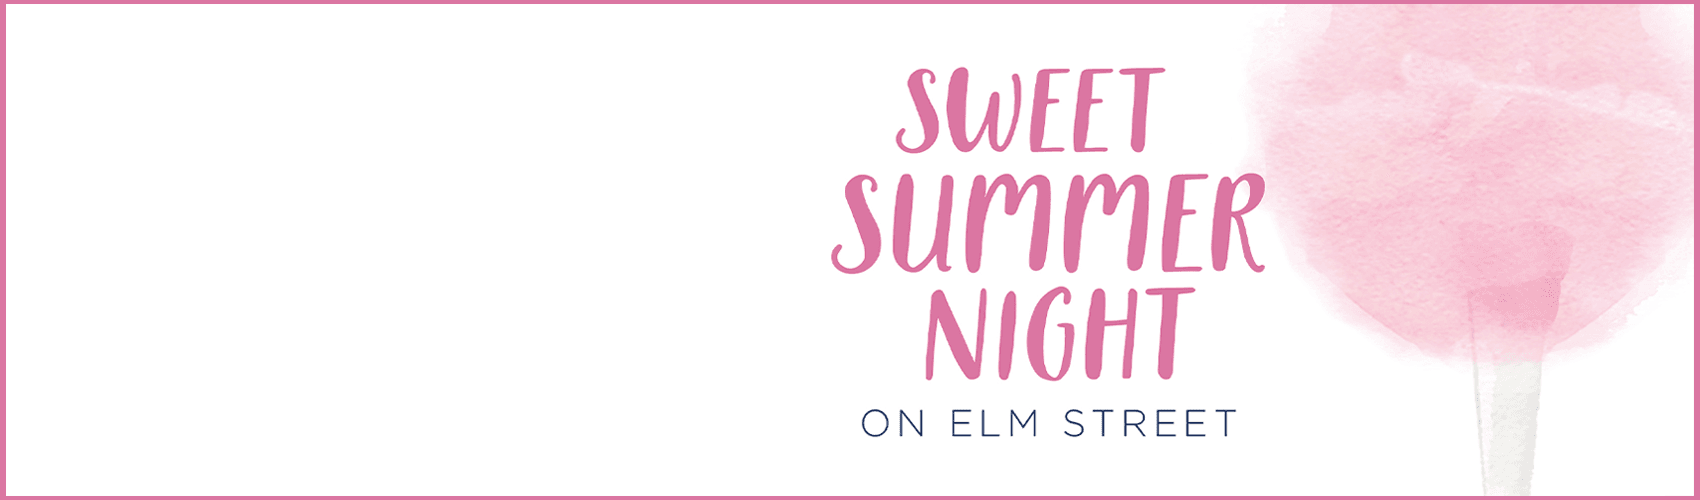 sweet-summer-night-banner